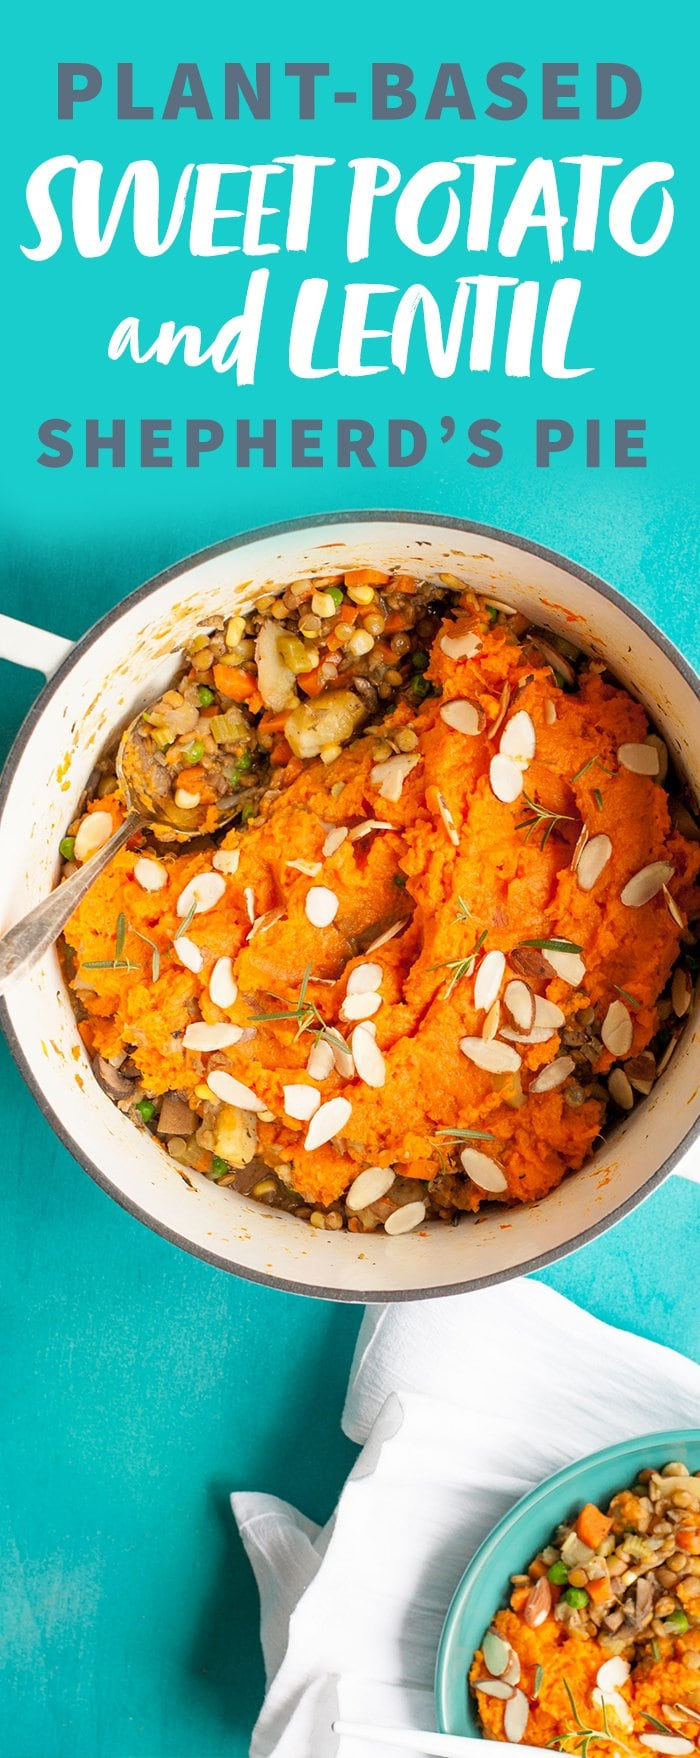 Sweet Potato and Lentil Shepherd's Pie